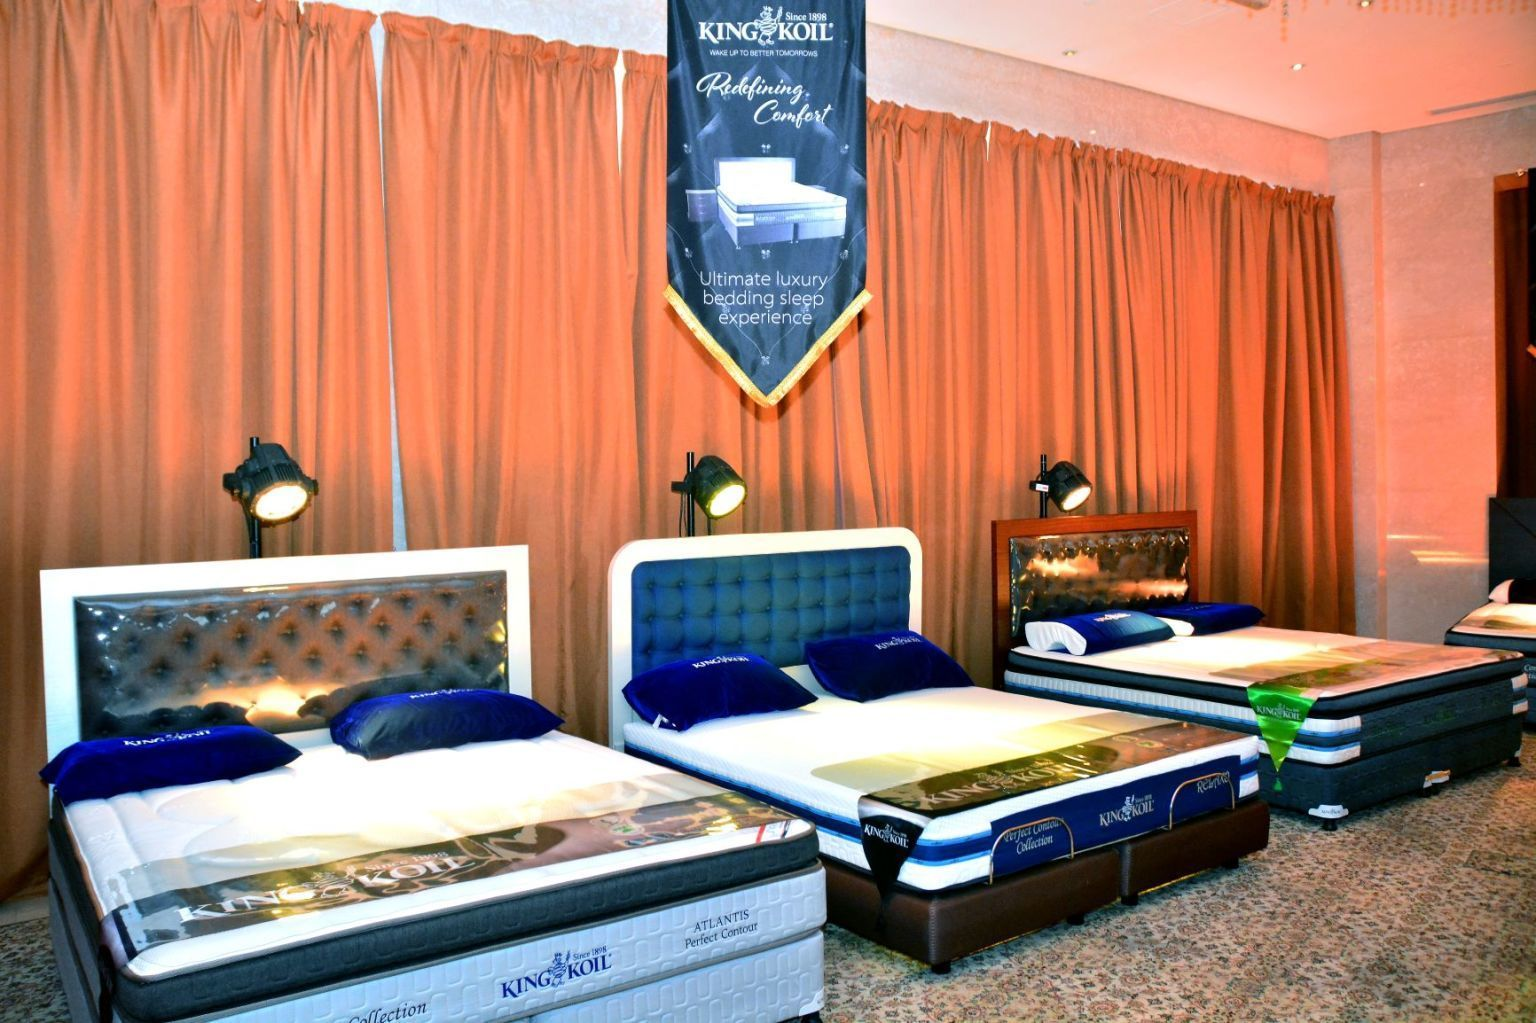 launch-of-king-koil-new-mattresses